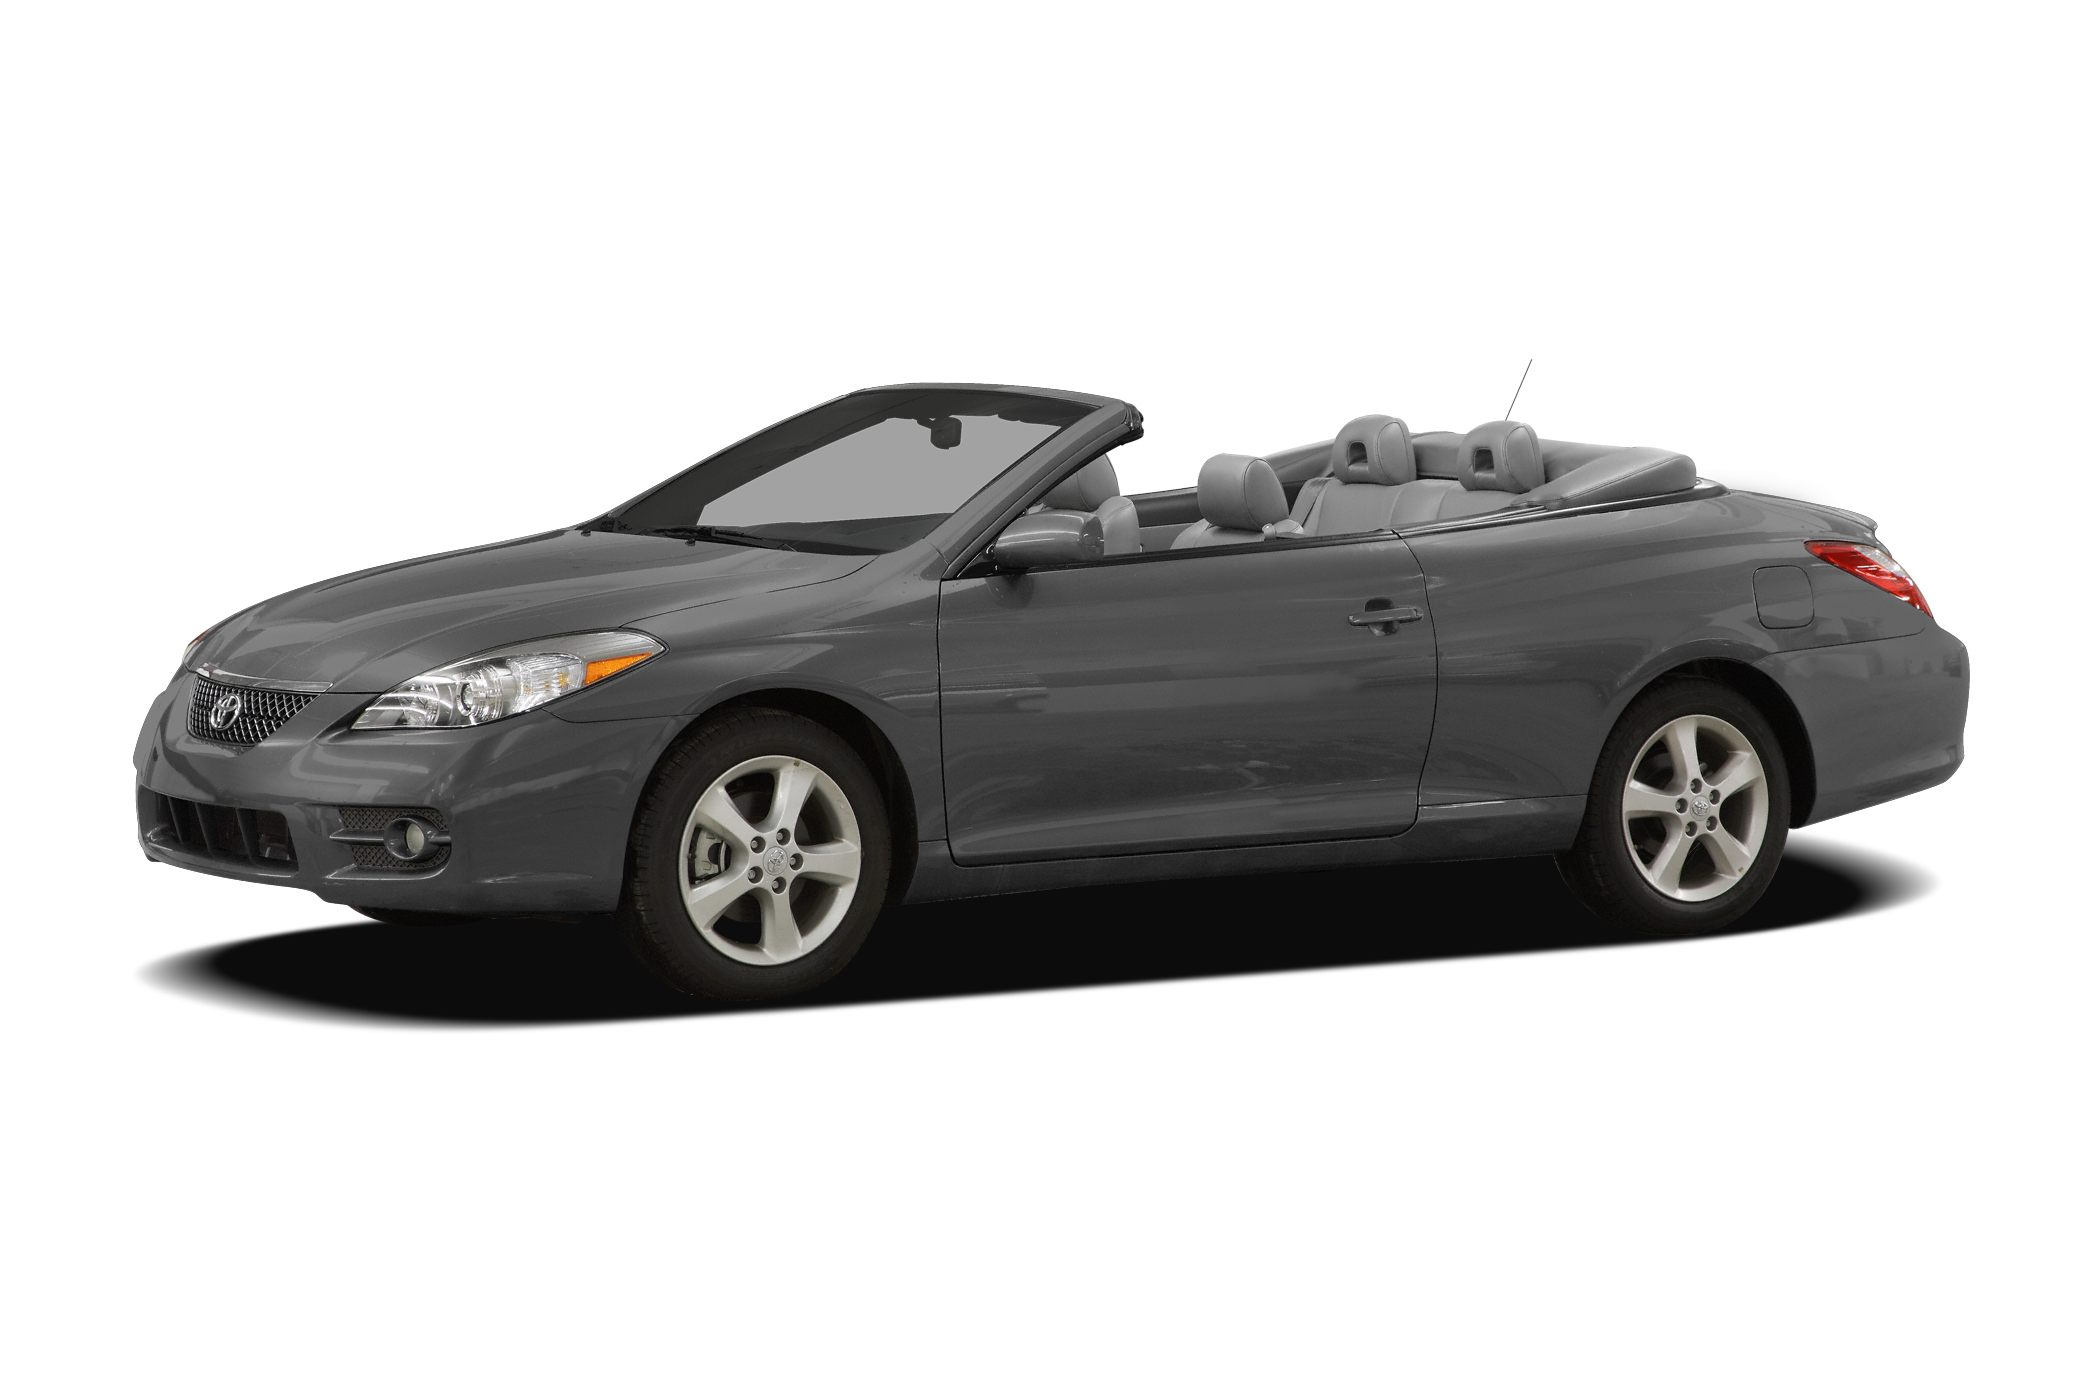 2008 Toyota Camry Solara SLE Recent Arrival 30 DAY 1000 MILES WARRANTY 2 OWNER FULLY LOADED C